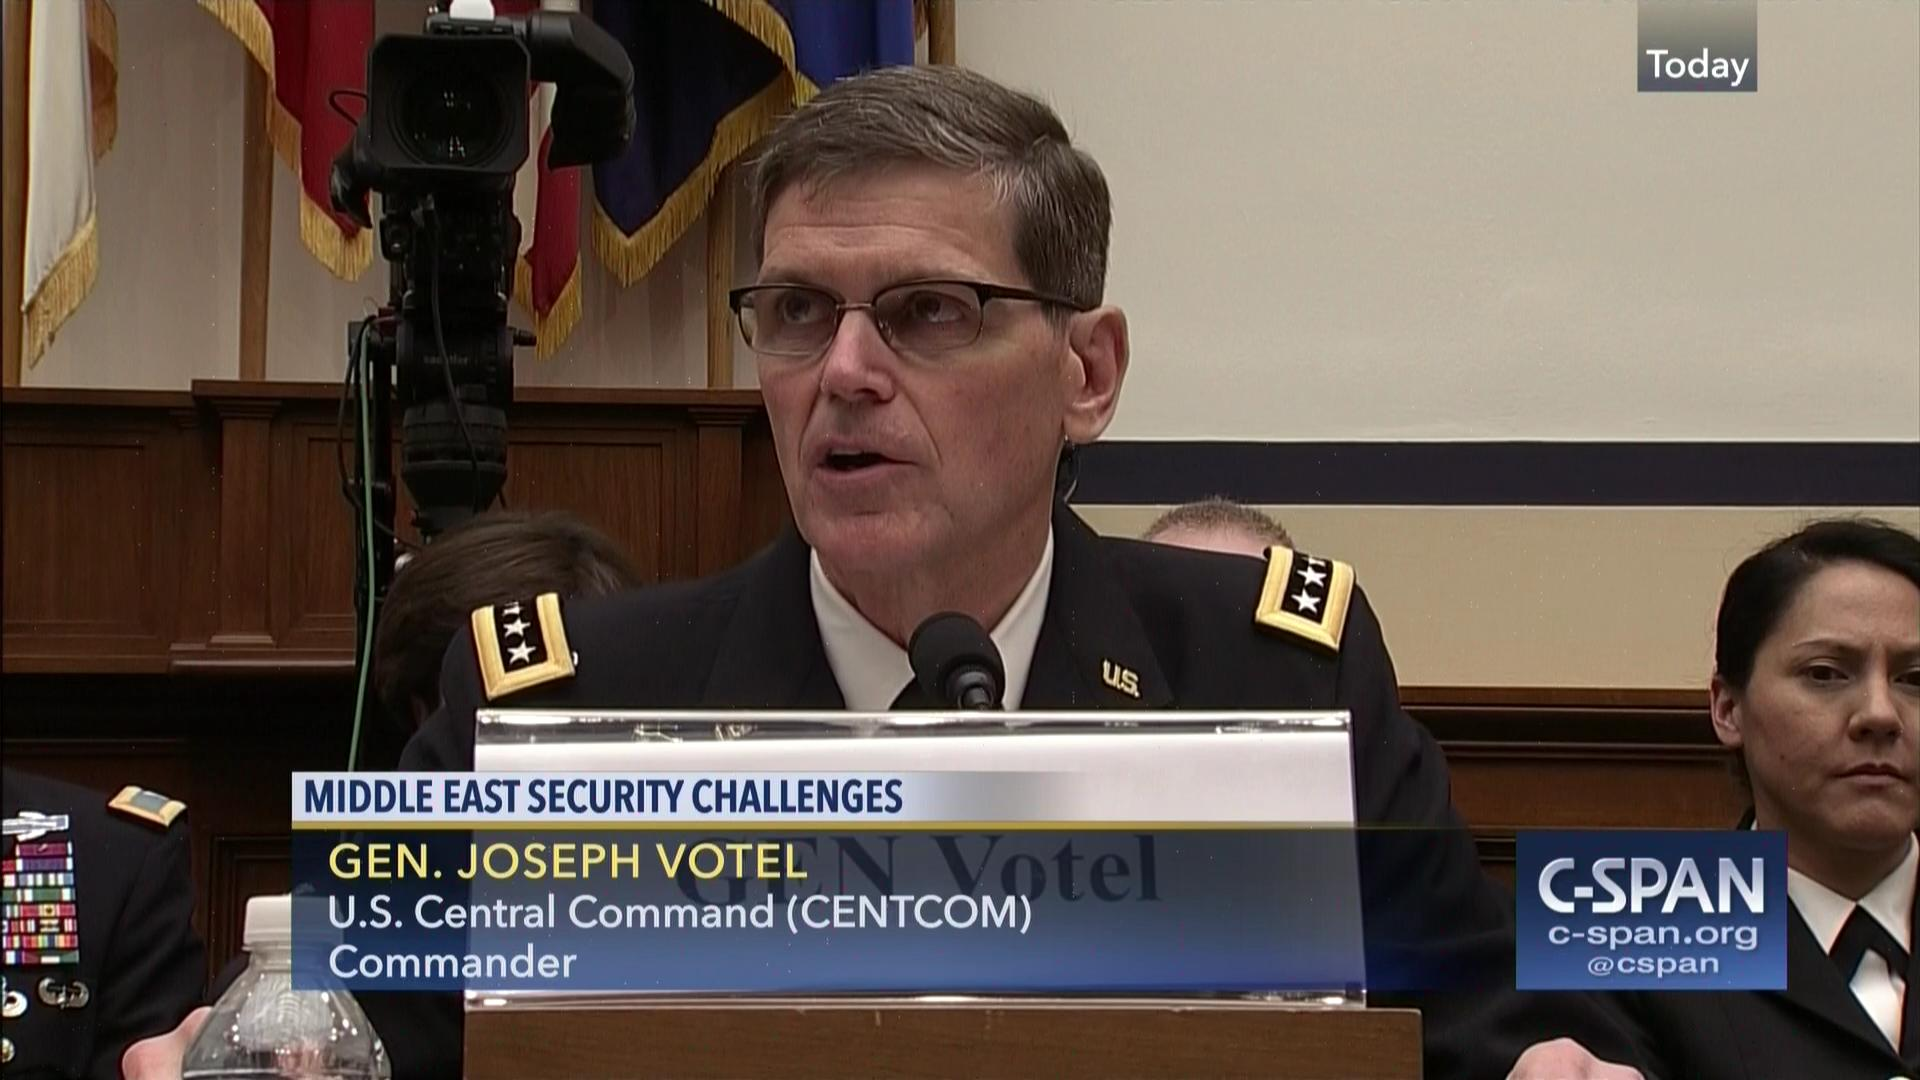 general votel questioned mosul air strike says investigation